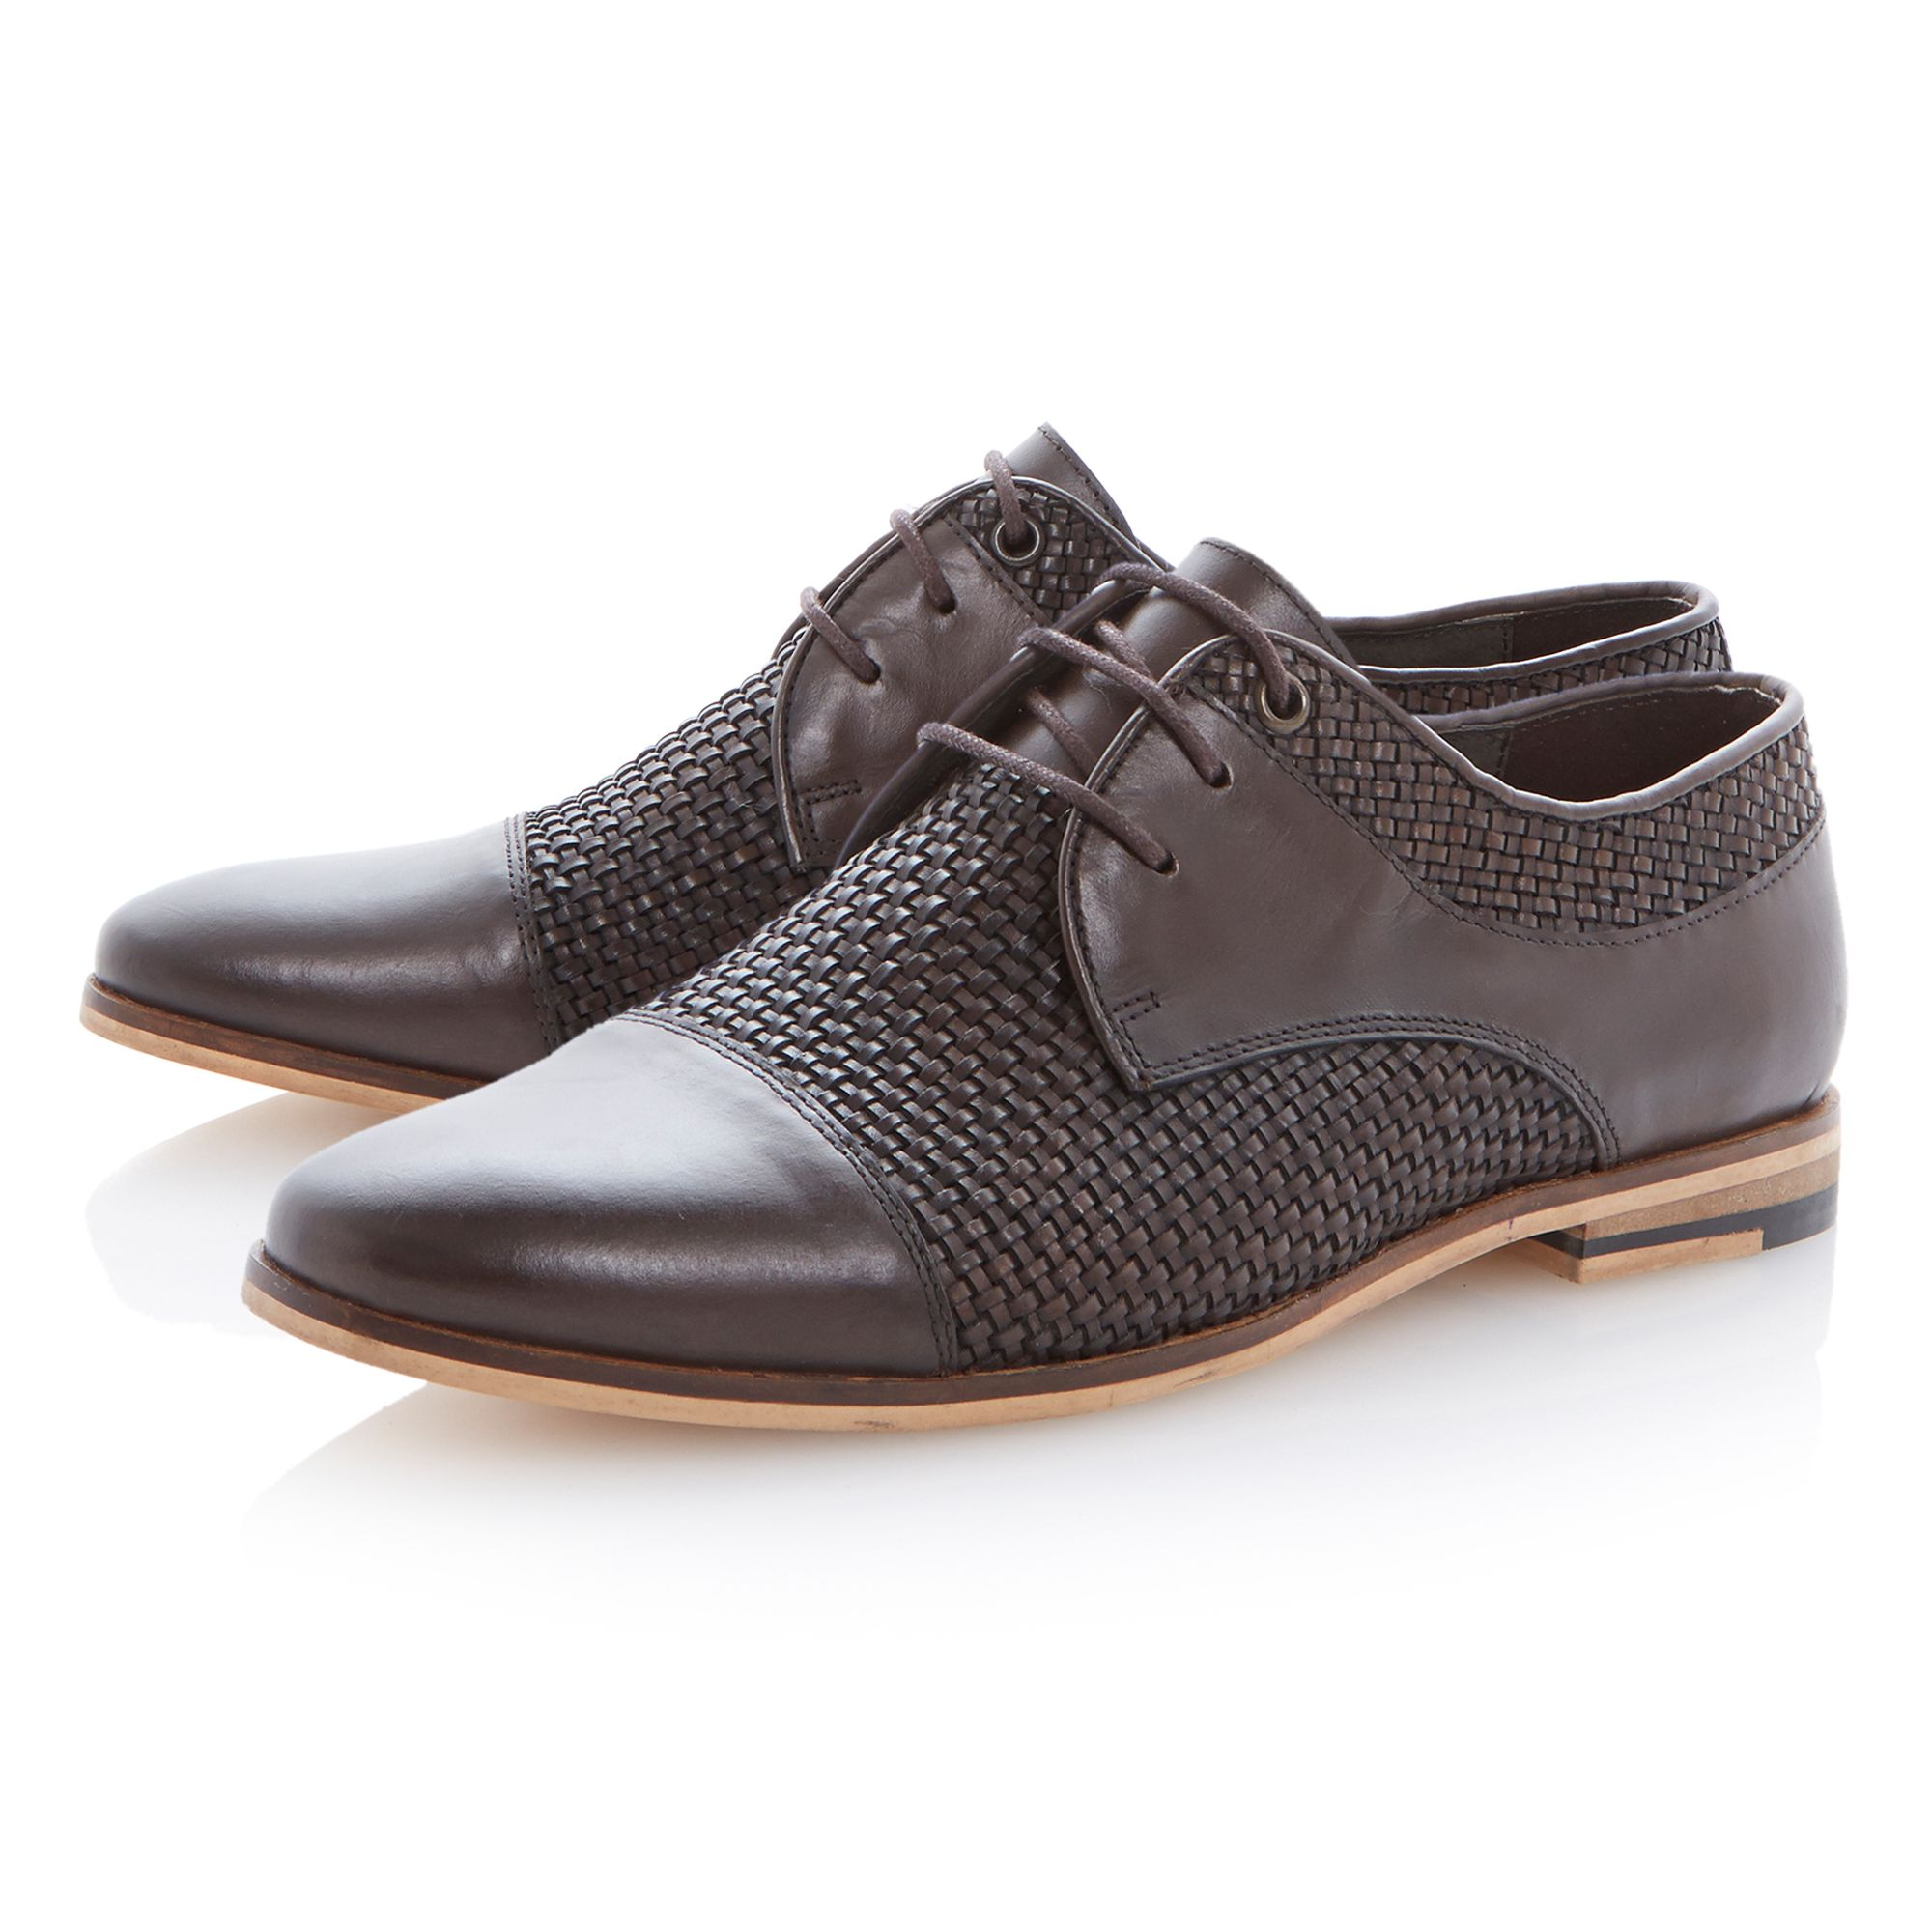 Bowie lace up woven toecap shoes